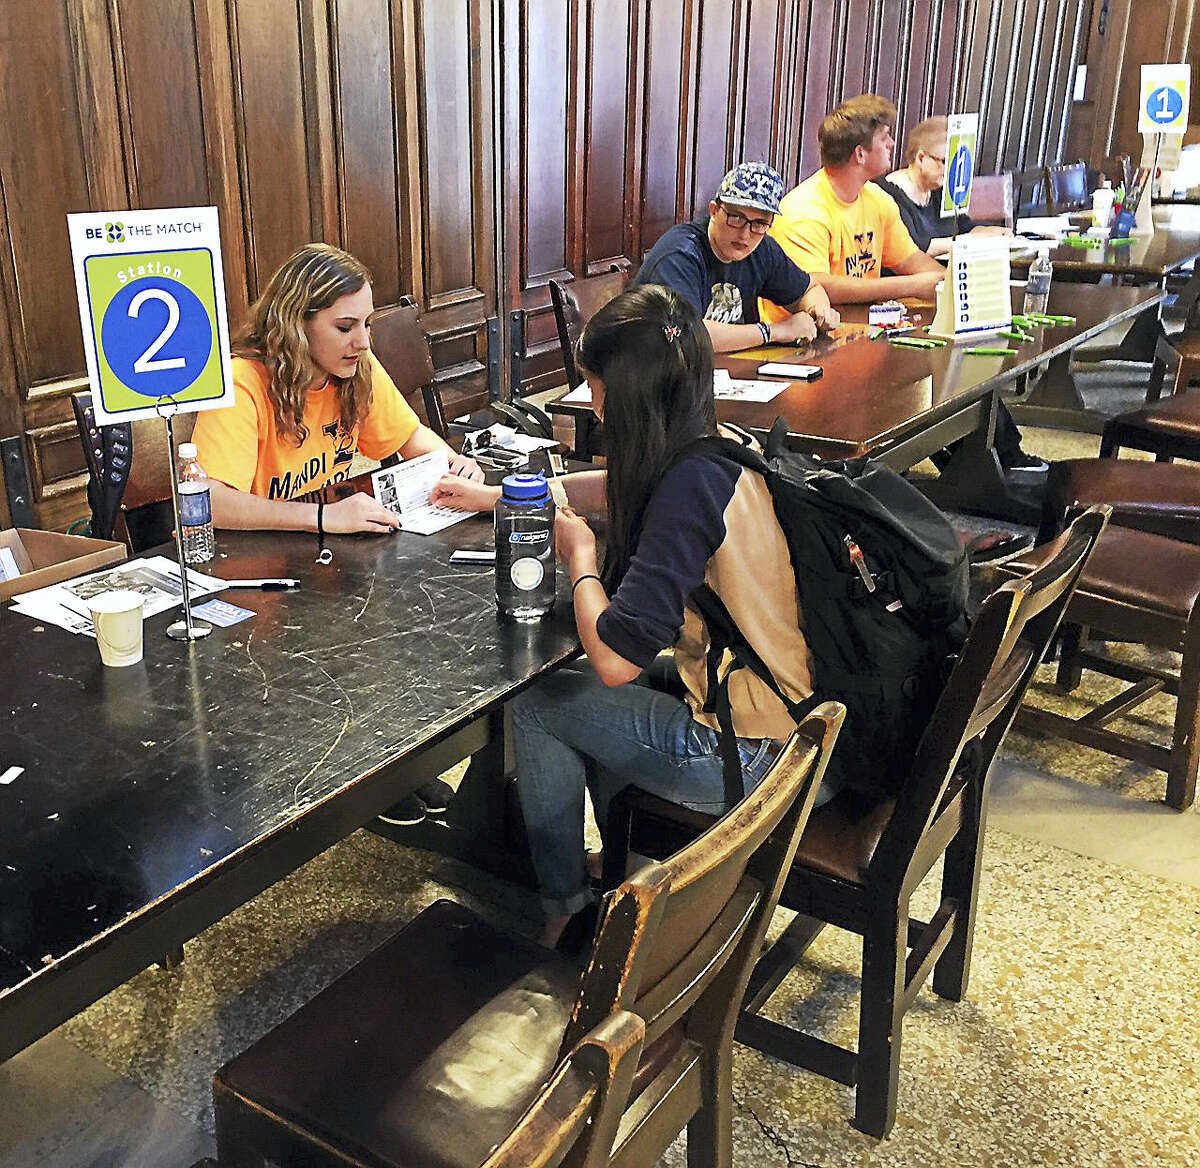 Volunteers sign up at the annual Mandi Schwartz Marrow Donor Registration Drive at Yale.